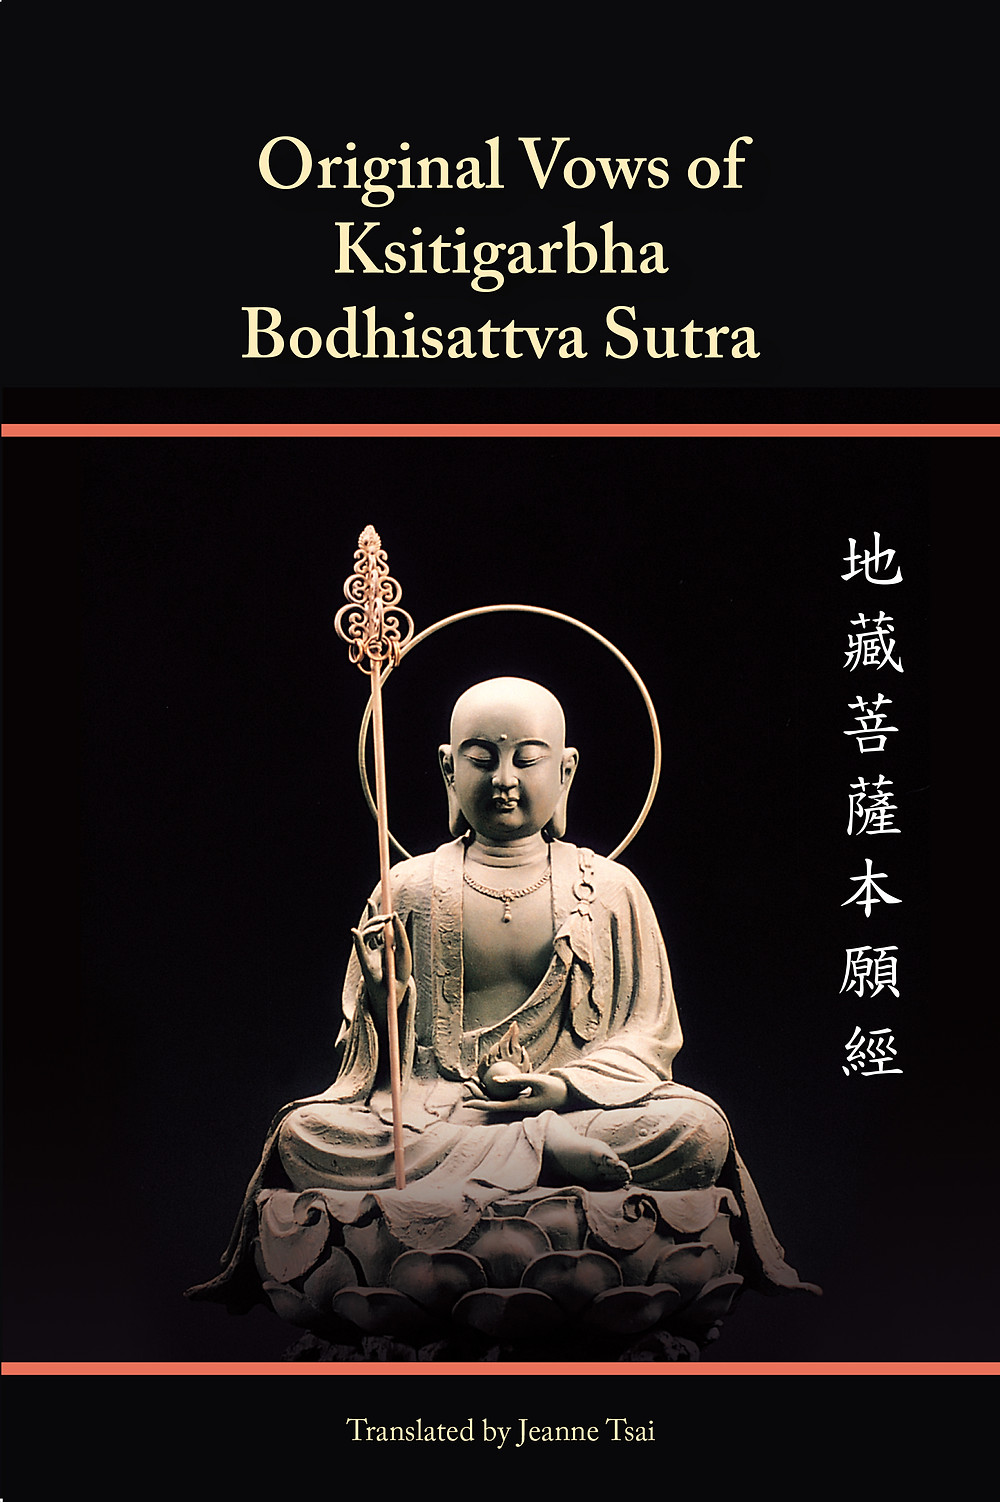 The Sutra of Orginal Vows of Kstigarbha Boddhisattva